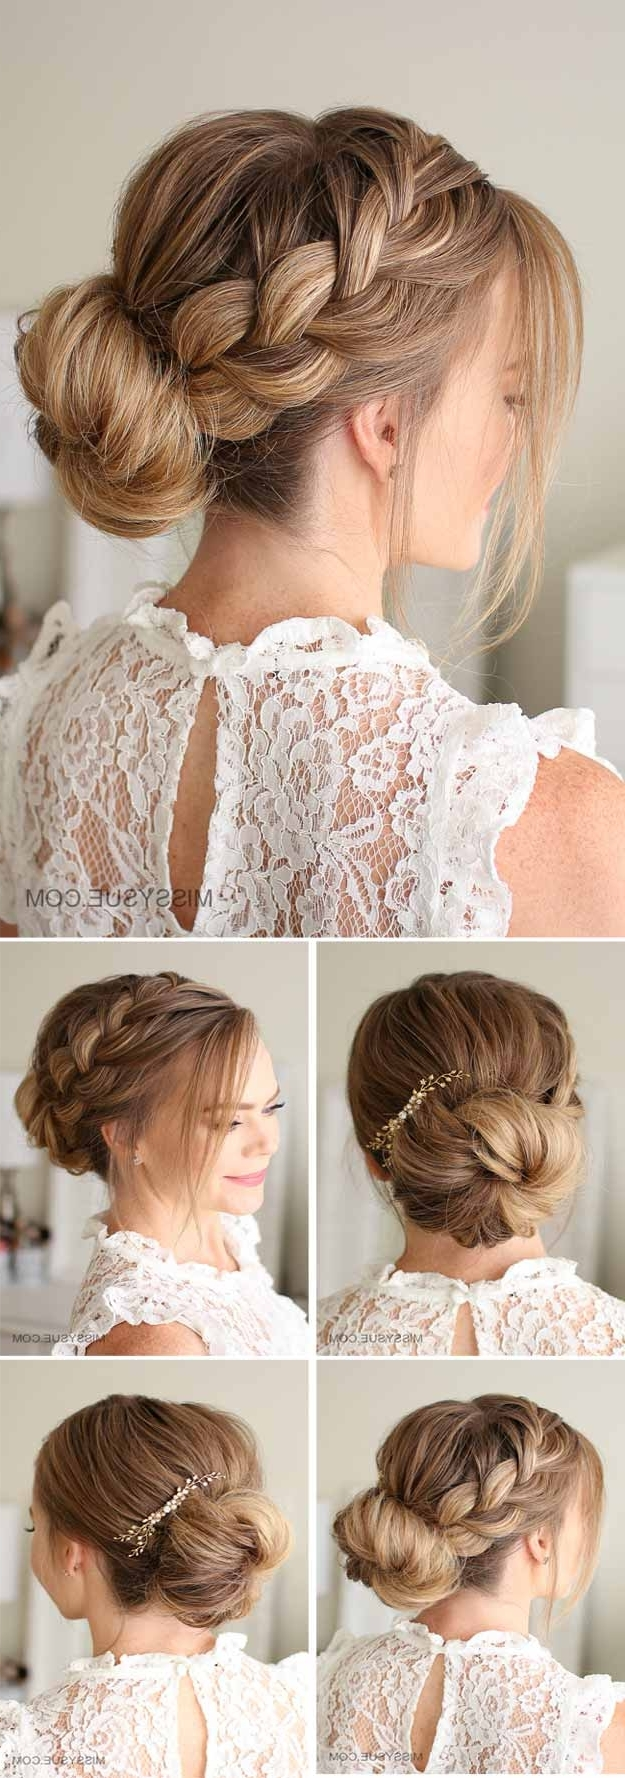 34 Hairstyles For New Years Eve The Goddess 20+ Amazing New Years Eve Hairstyles For Medium Length Hair